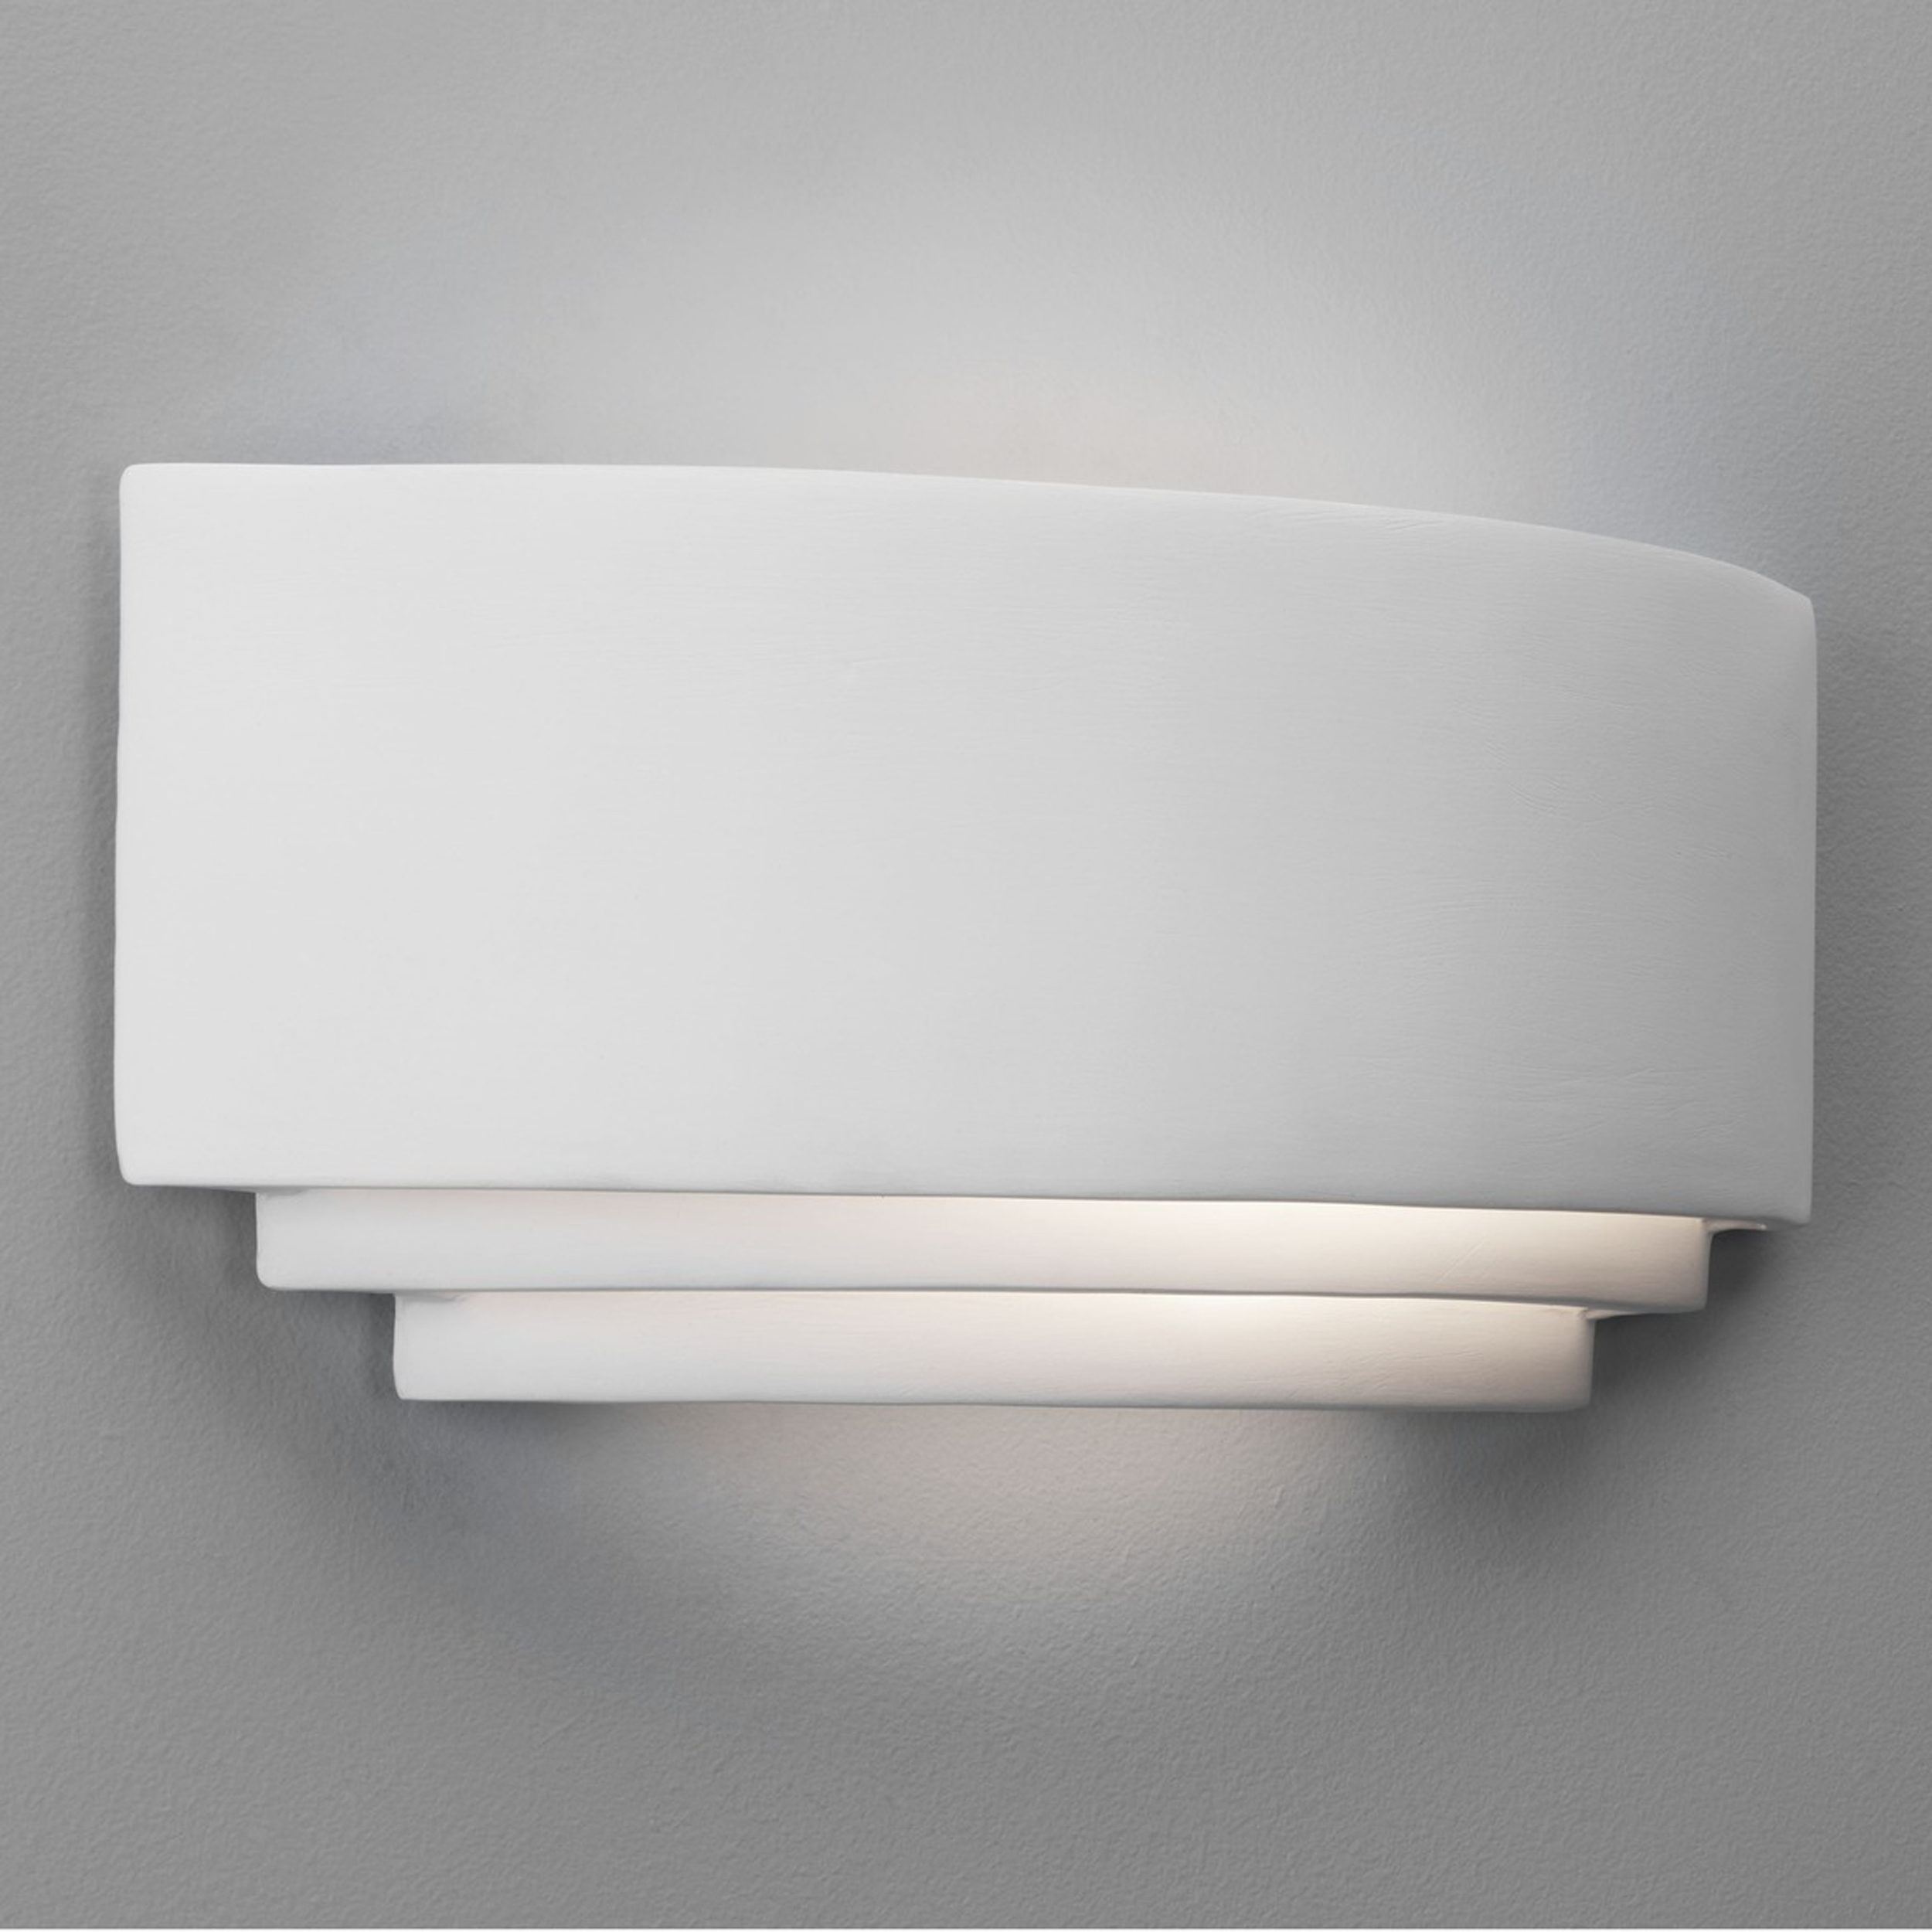 Astro Amalfi 315 Wall Light White B